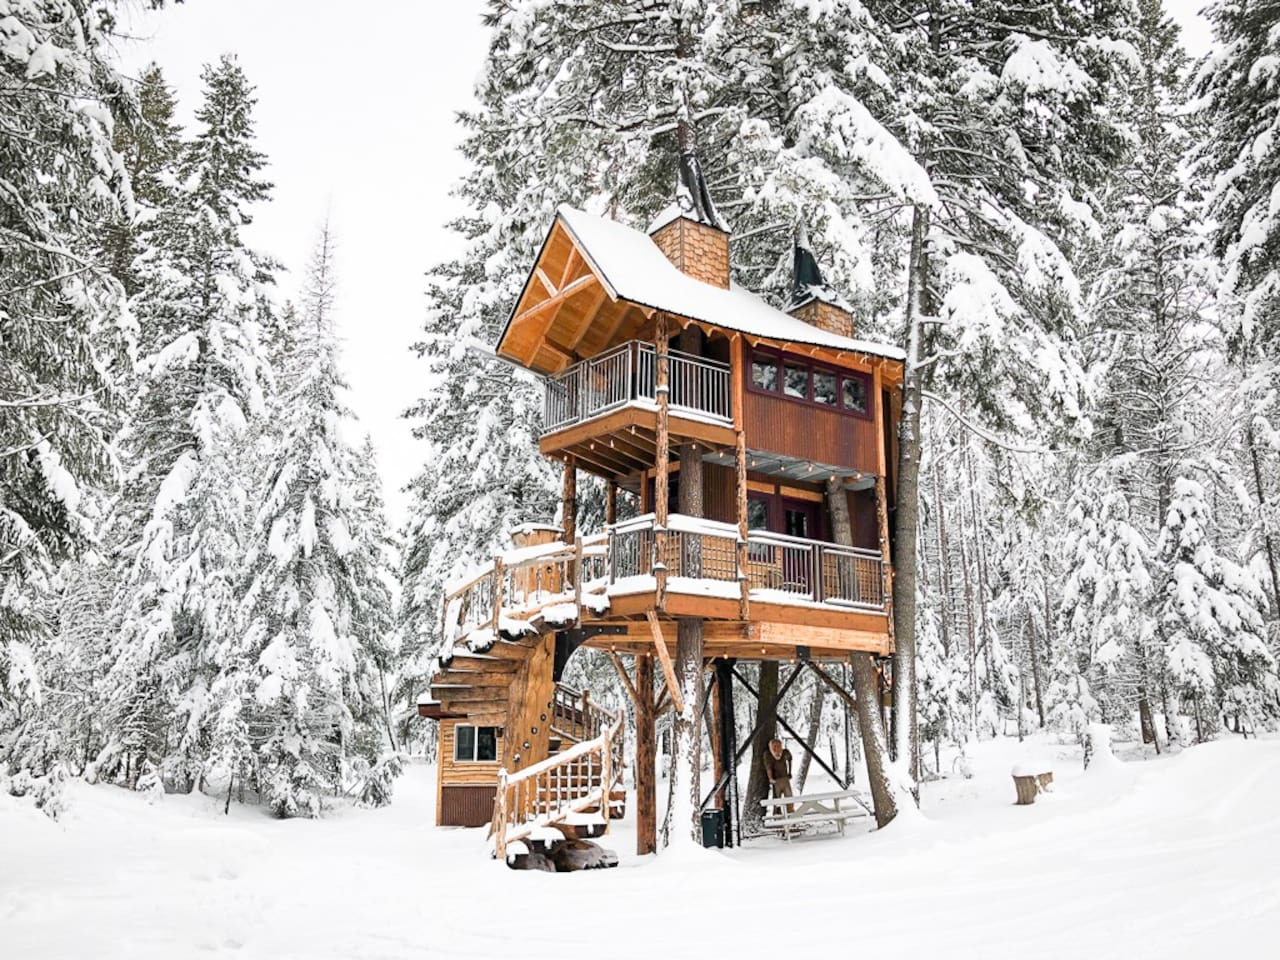 Treehouse Rental in Montana on AirBnB